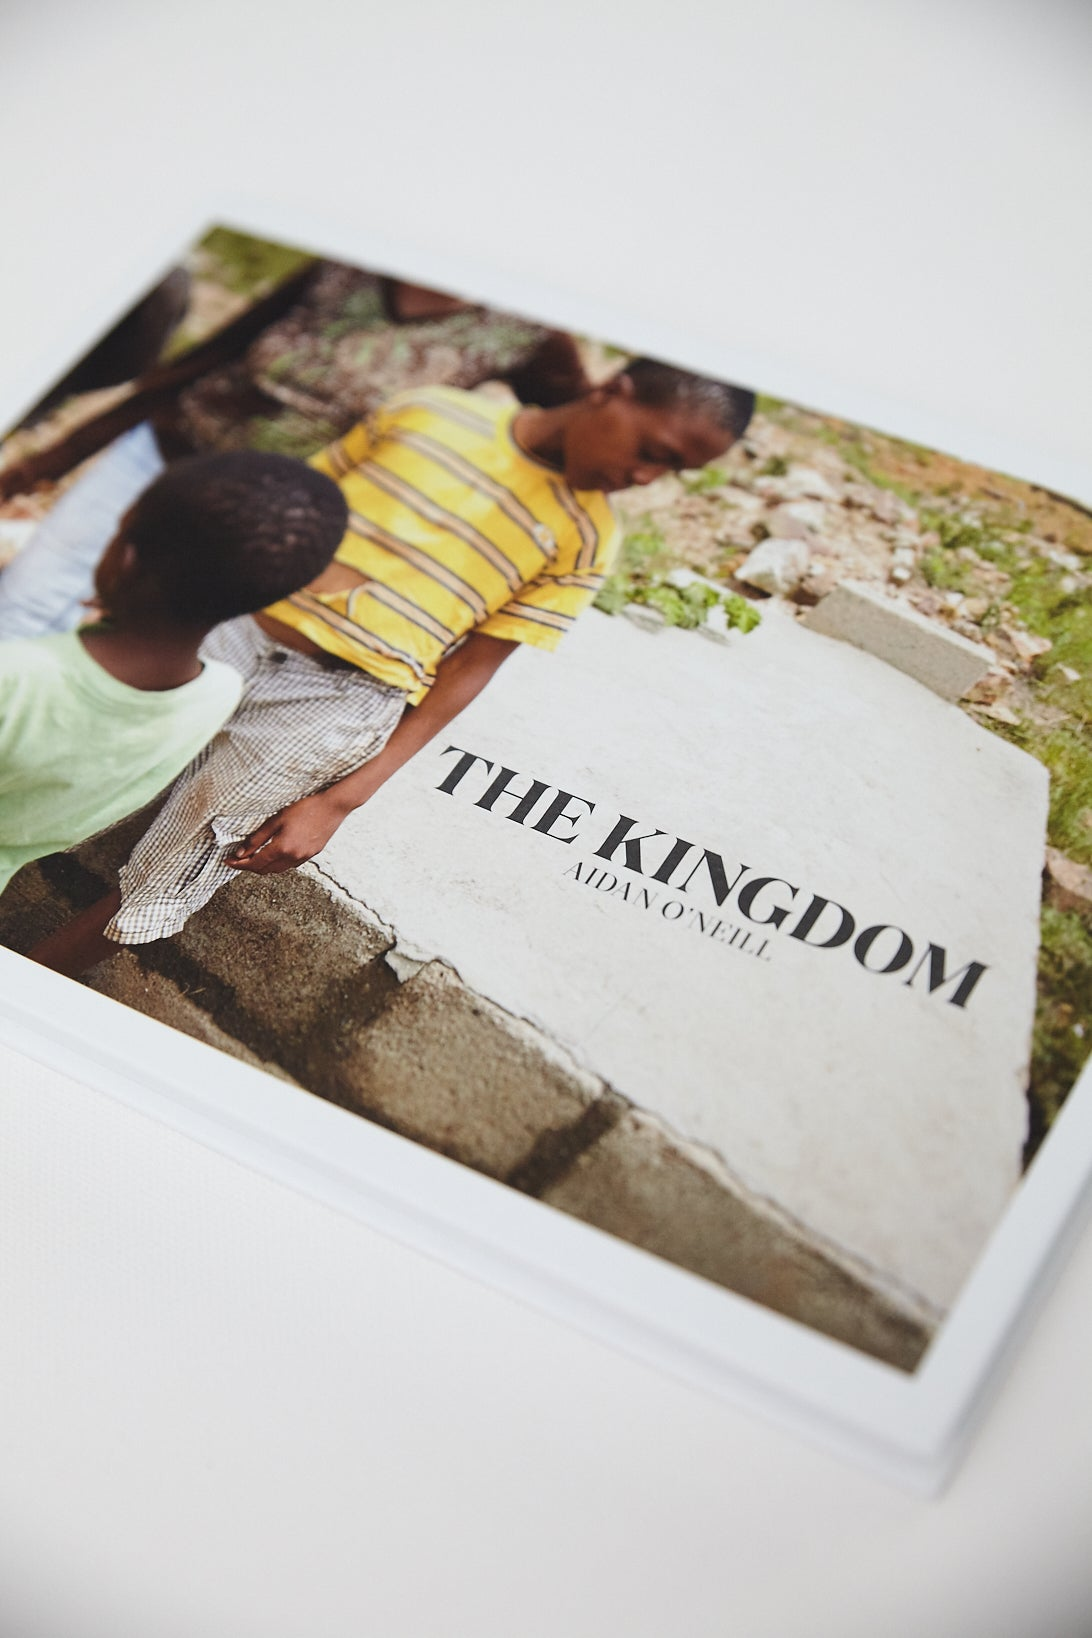 The Kingdom, Limited edition book and print